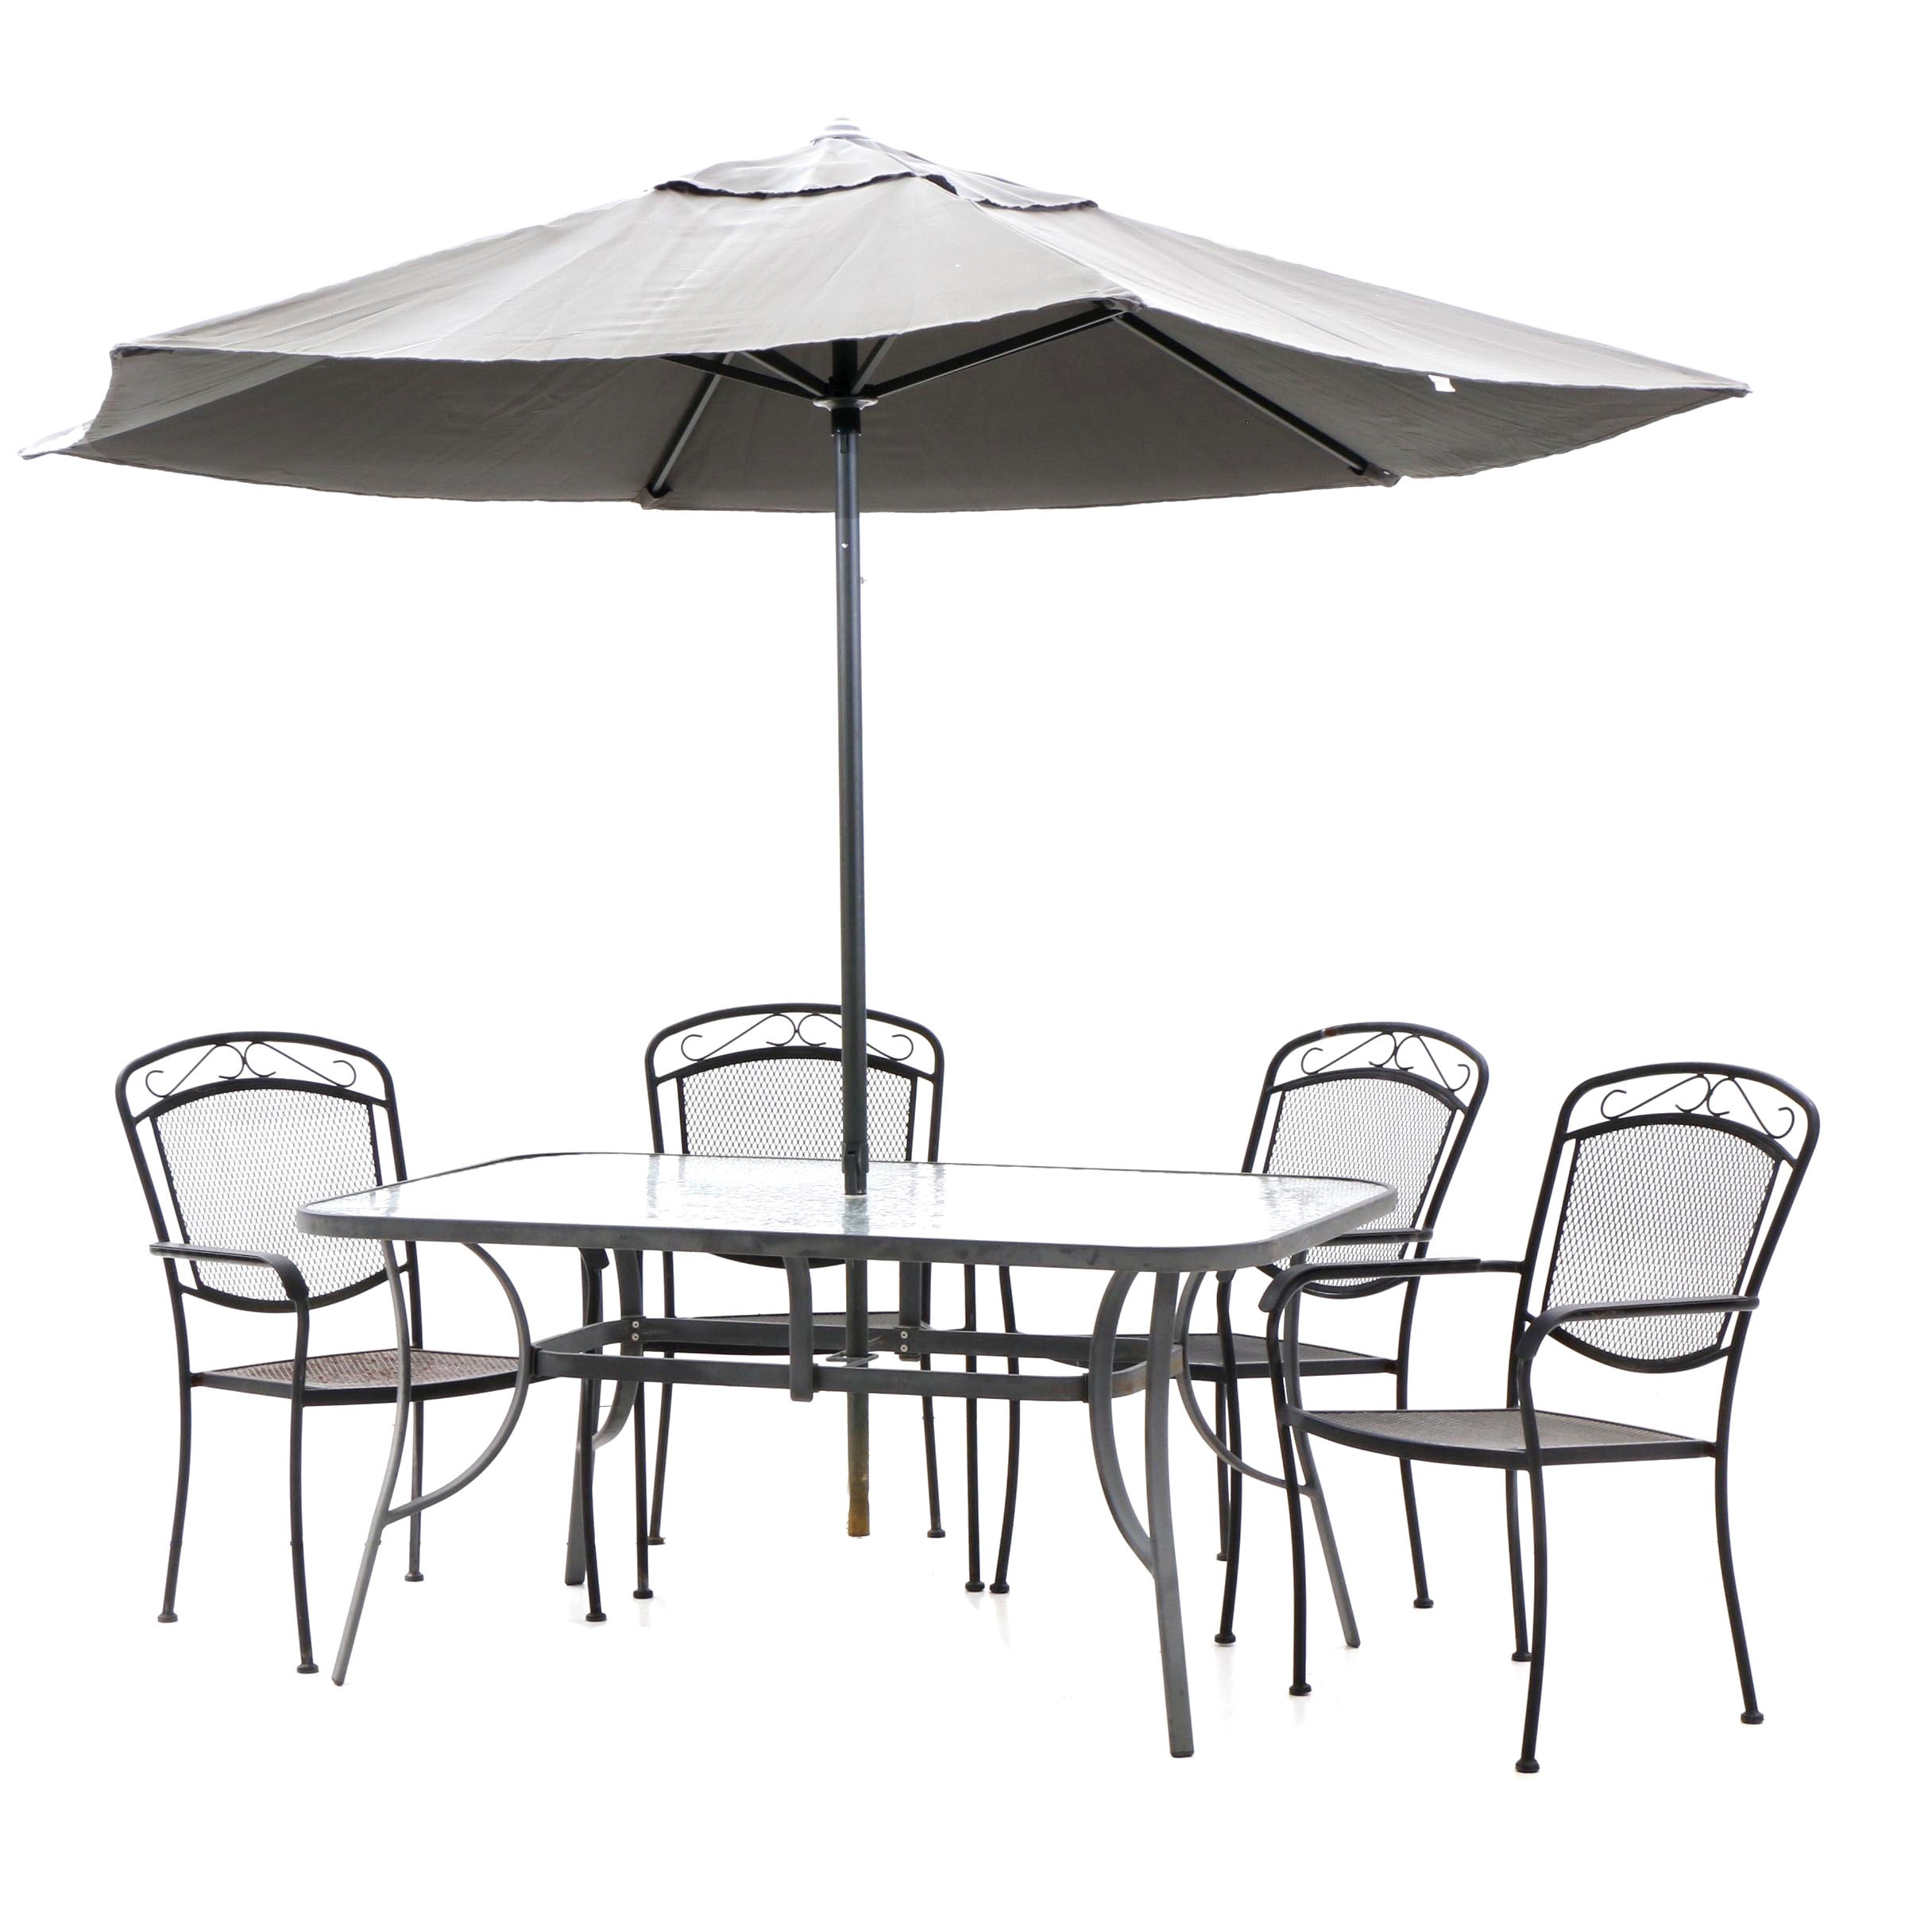 Patio Dining Table and Chairs with Home Trends Umbrella